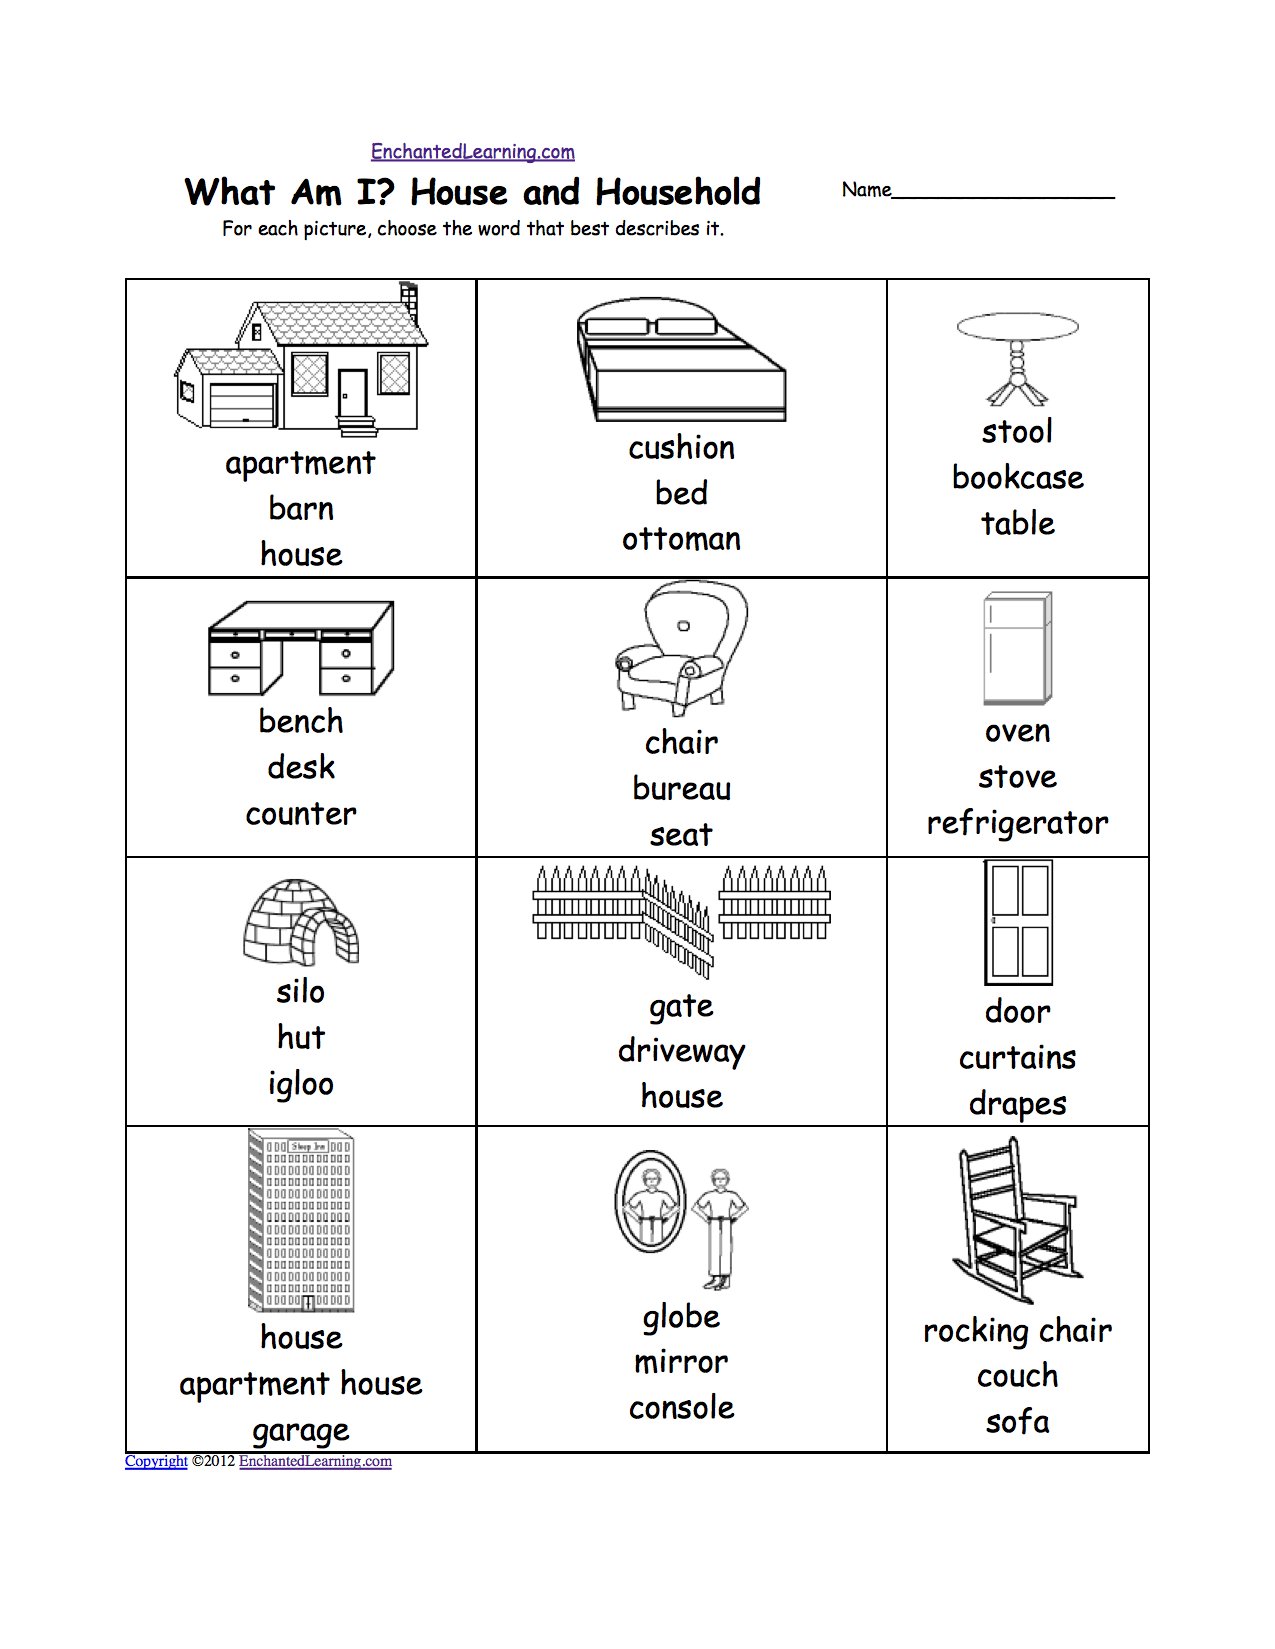 house worksheets   what am i house and household for each house related  item choose the. house worksheets   what am i house and household for each house